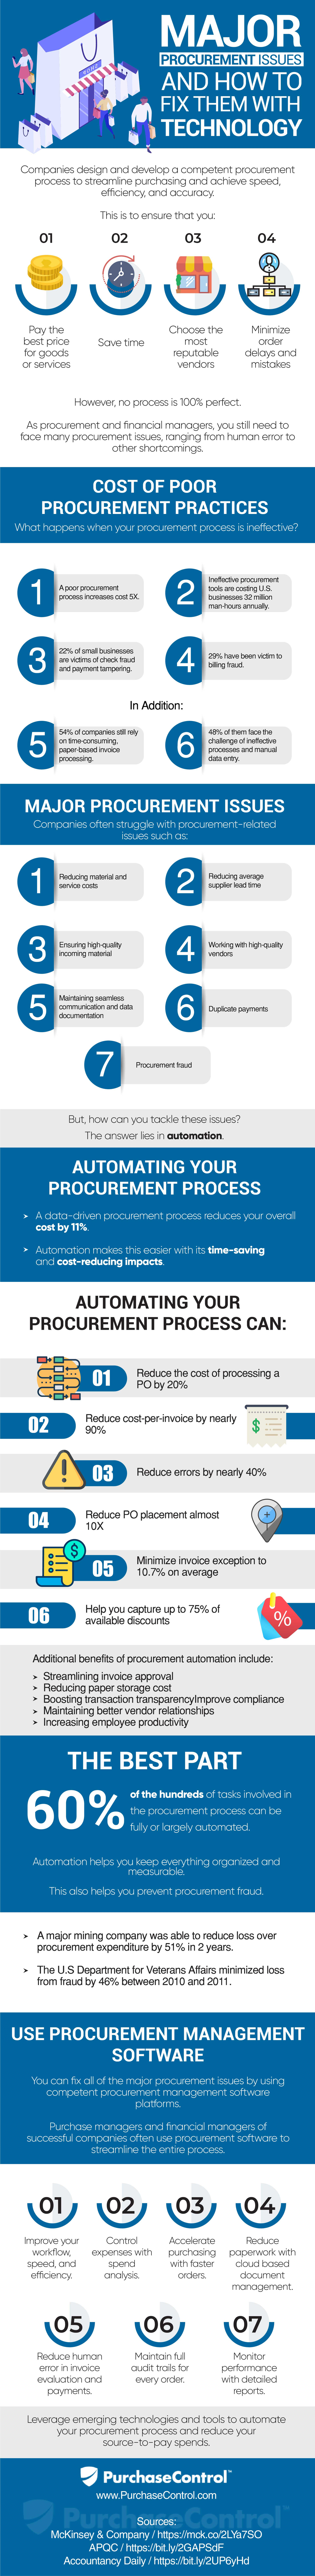 Major-Procurement-Issues-&-How-to-Fix-Them-with-Technology